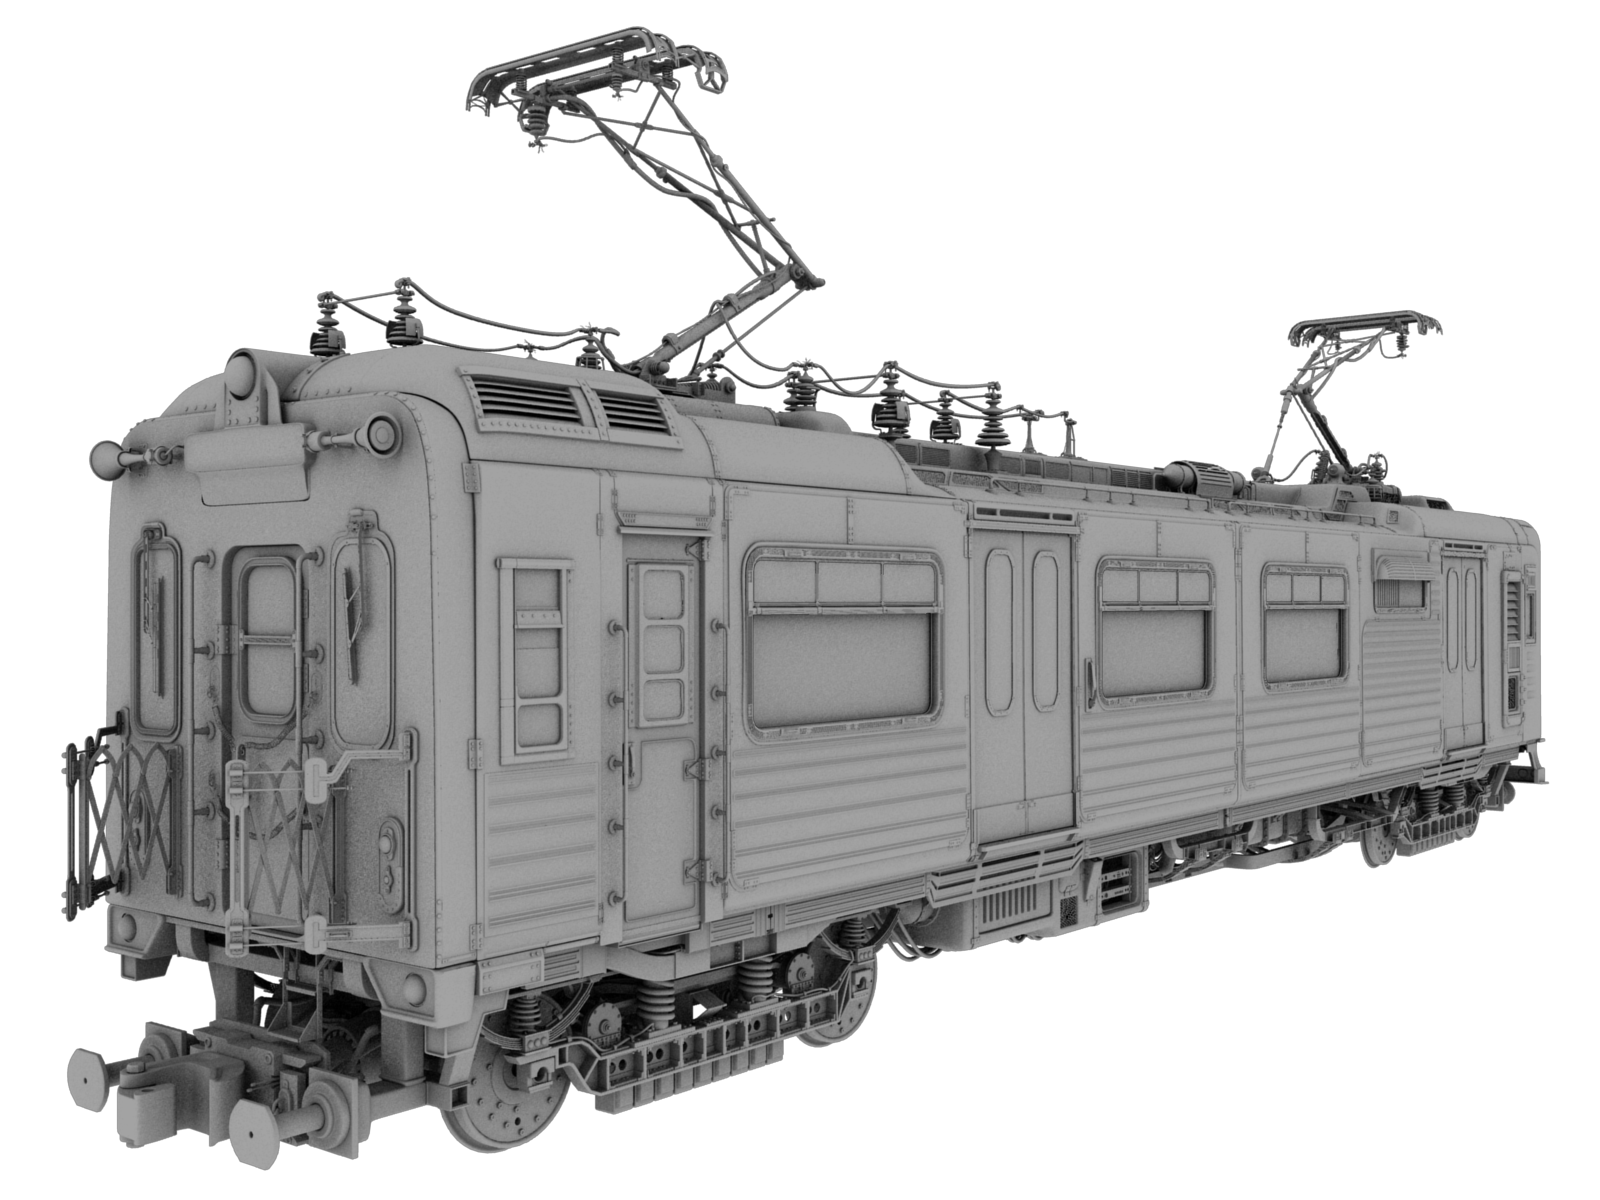 Transparent train model. Modeling the with automatic